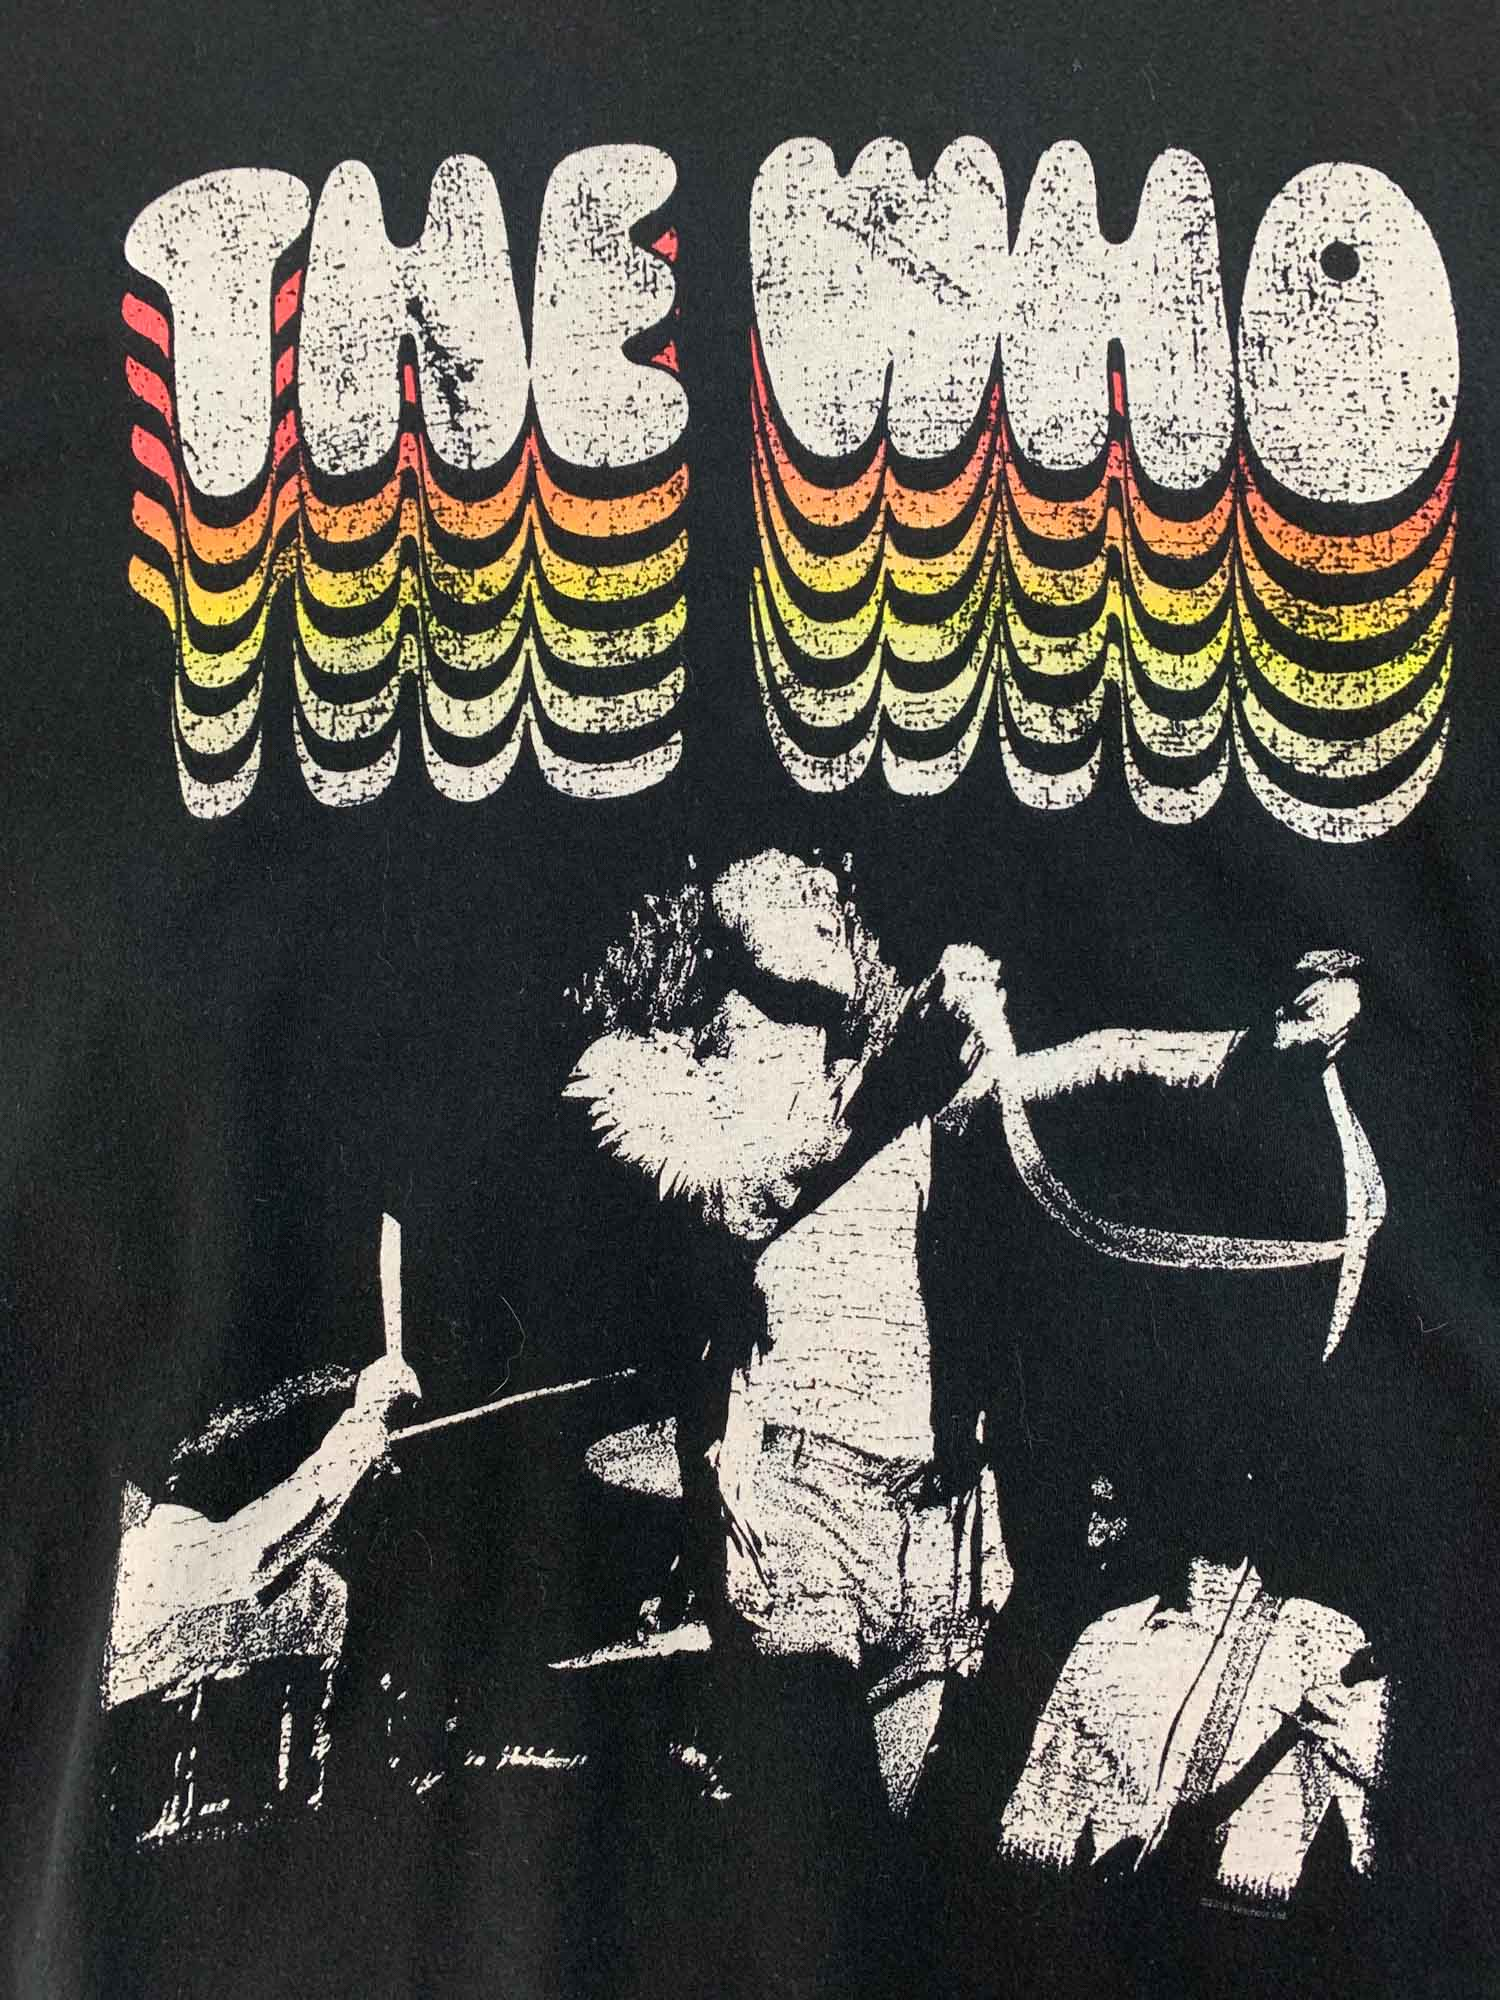 'THE WHO' BAND TEE